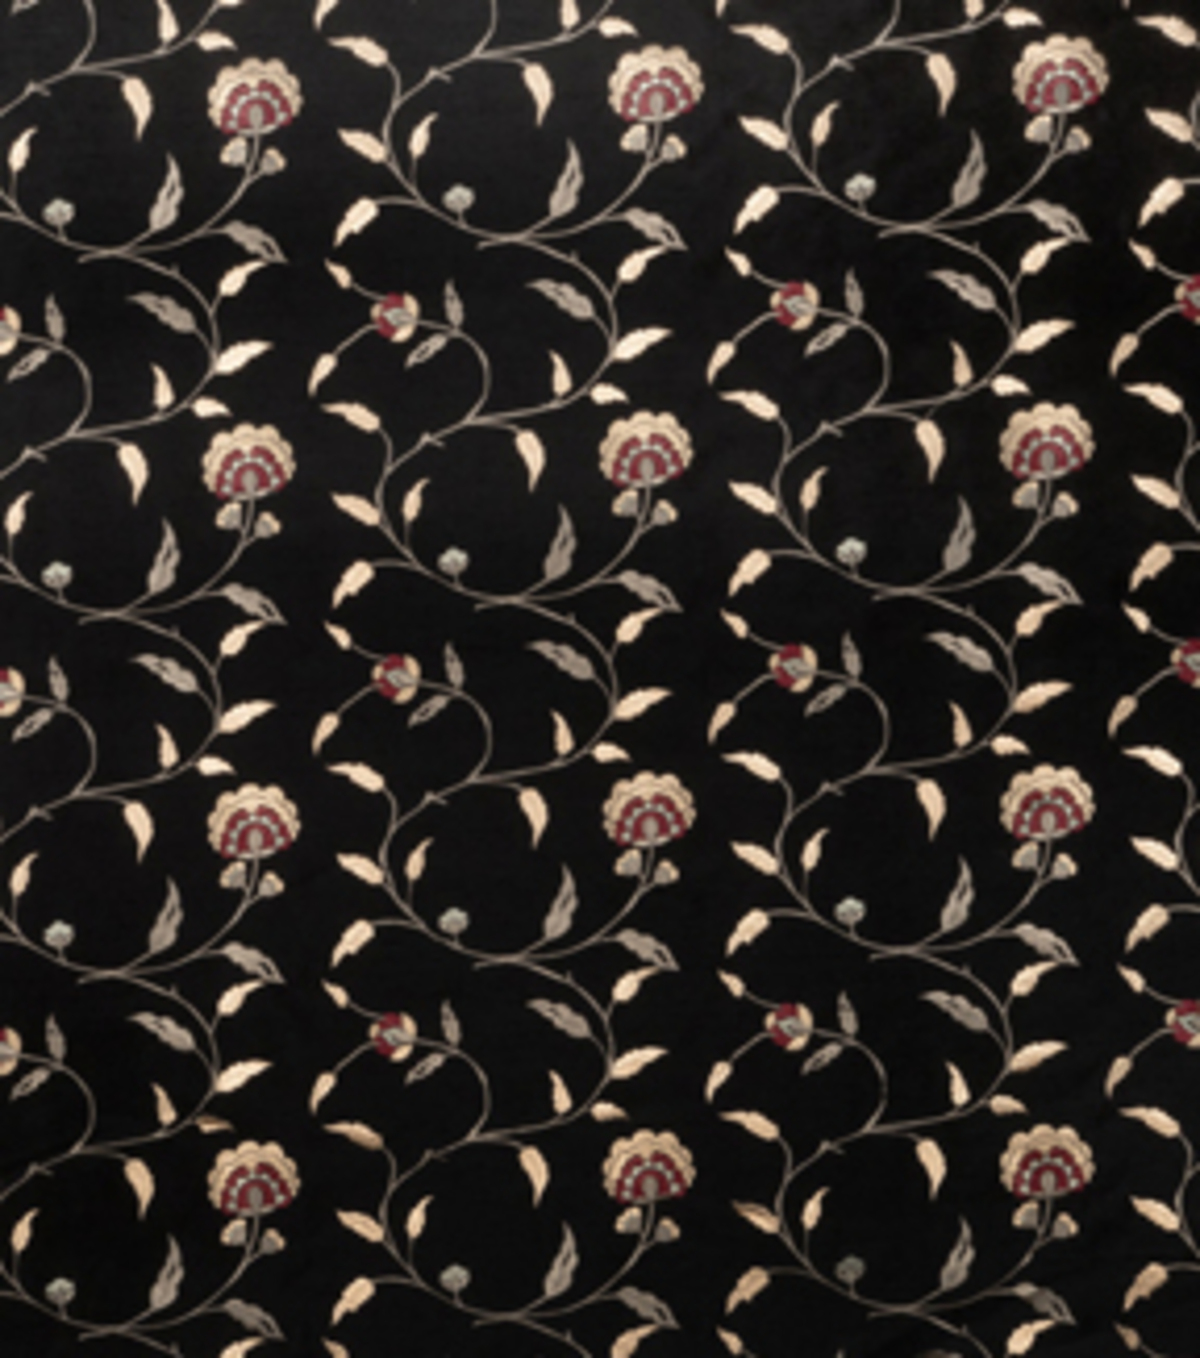 Home Decor 8\u0022x8\u0022 Fabric Swatch-Print Fabric Eaton Square Caesar Black